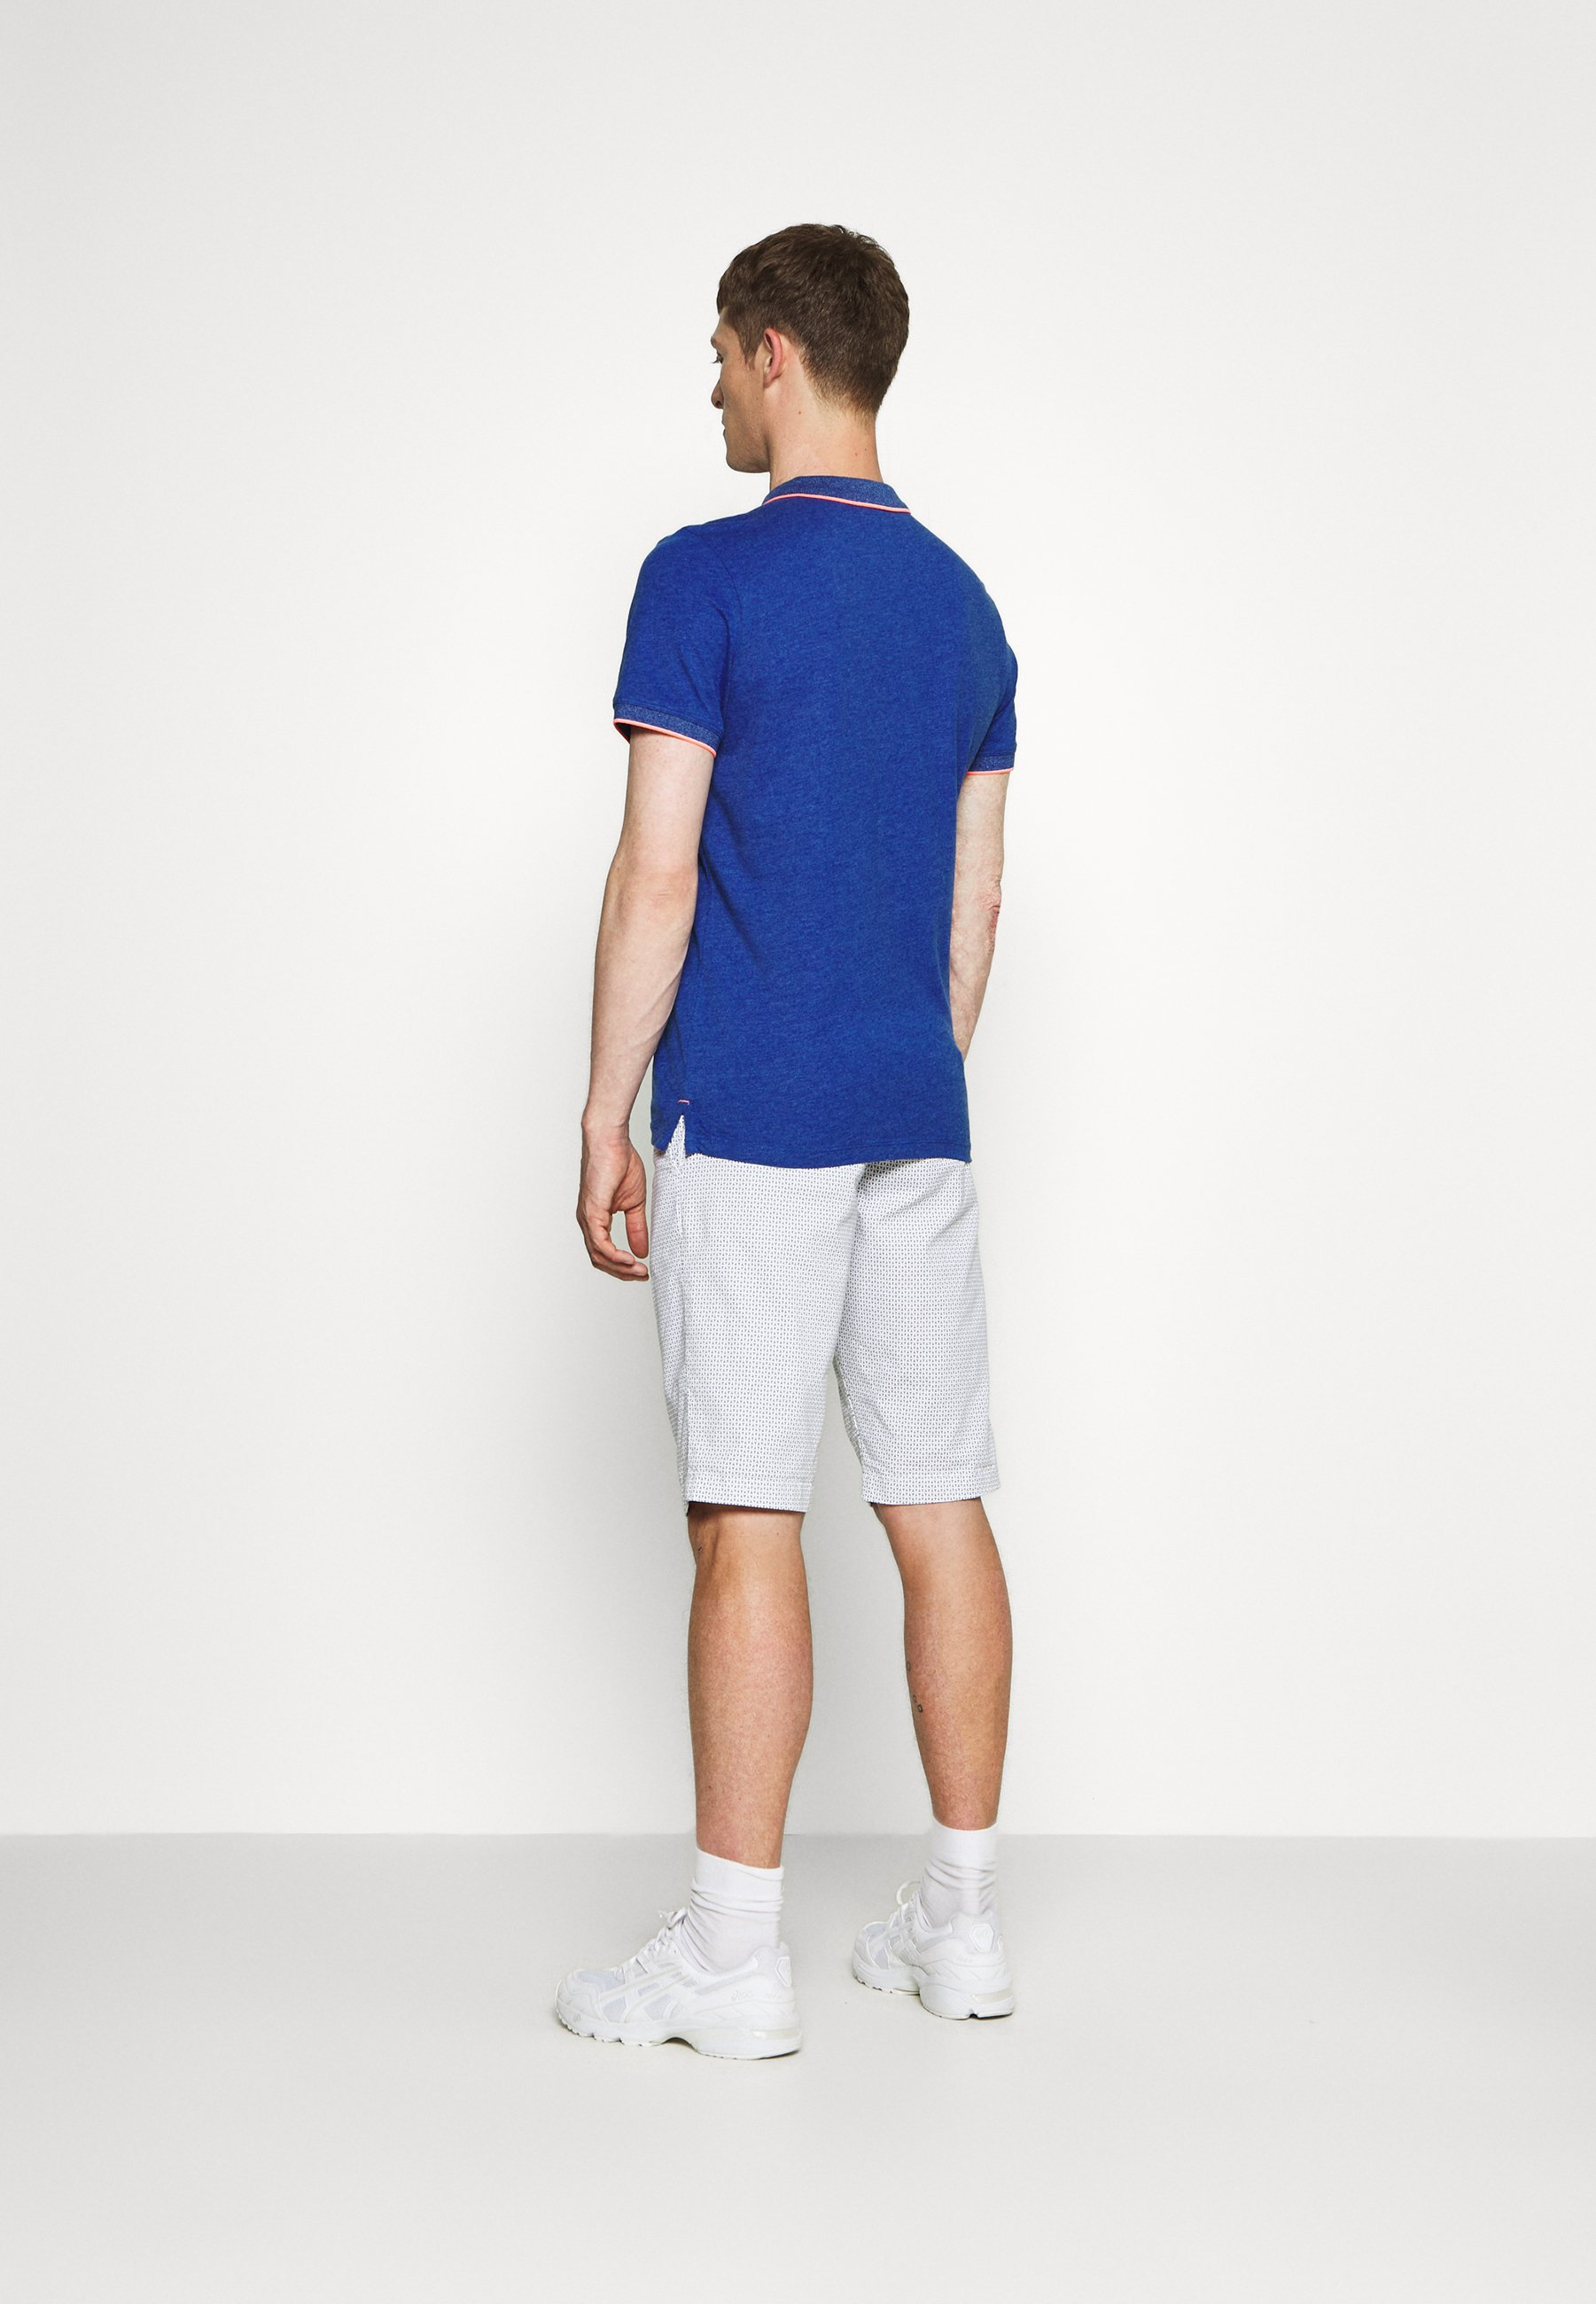 TOM TAILOR WITH TIPPING - Polo shirt - royal blue/white melange g4S3t